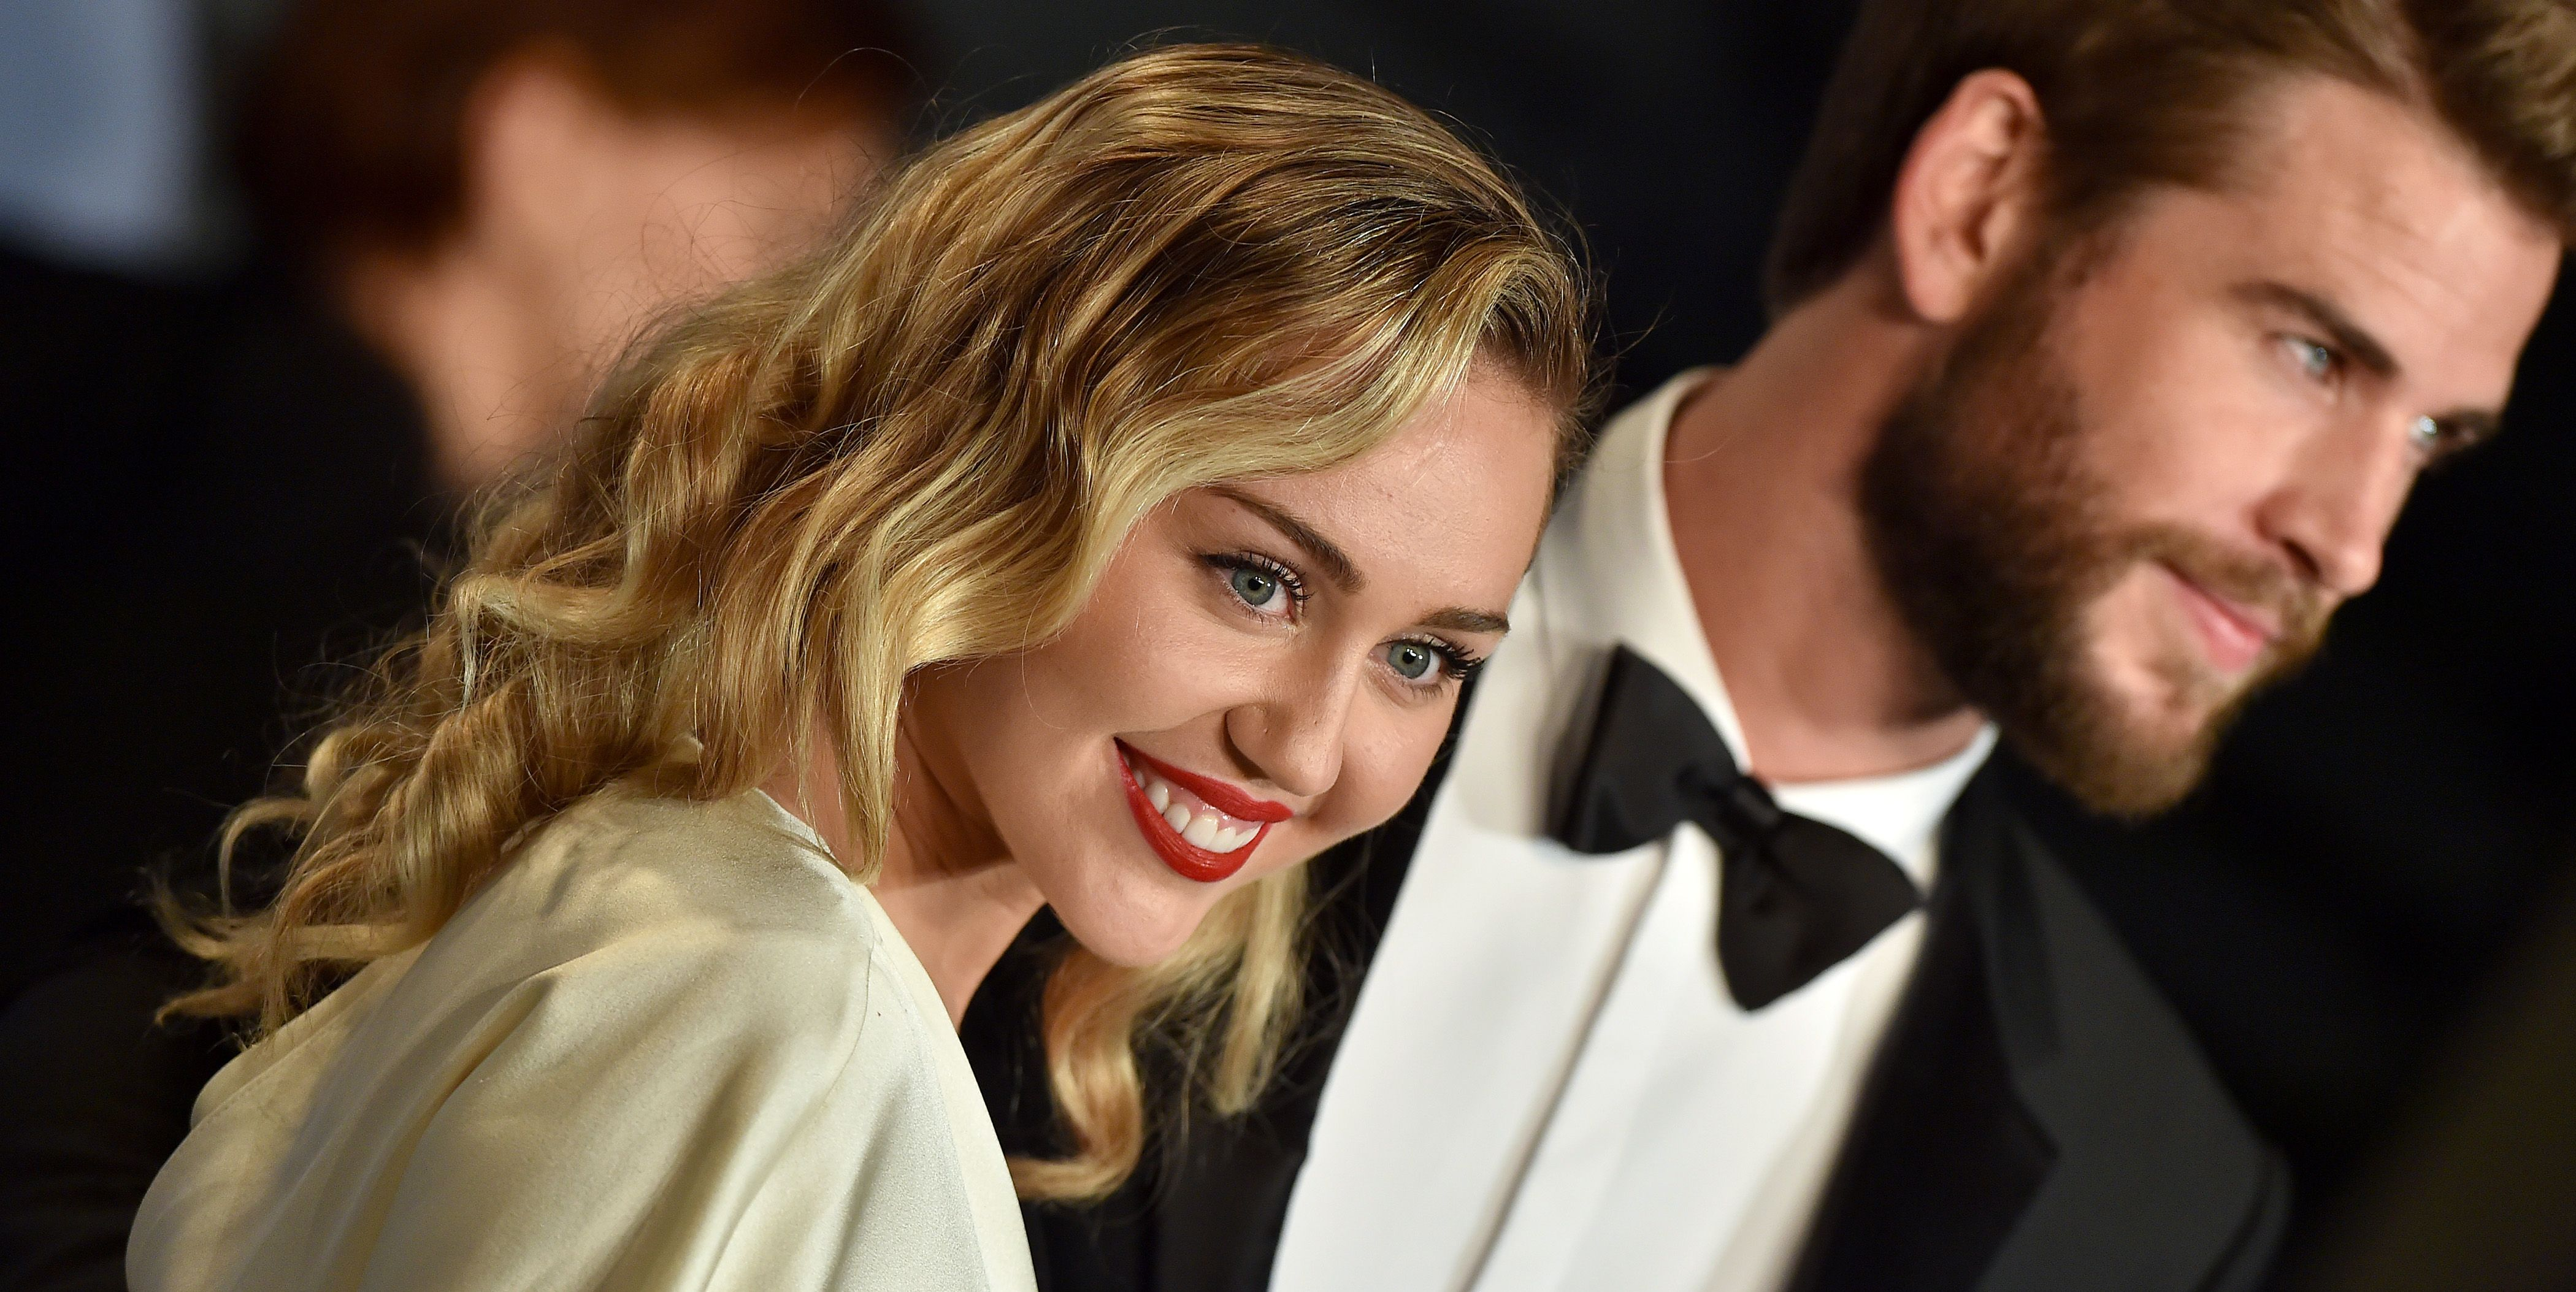 Why Miley Cyrus Says She Calls Liam Hemsworth Her 'Survival Partner' Instead of Fiancé Now